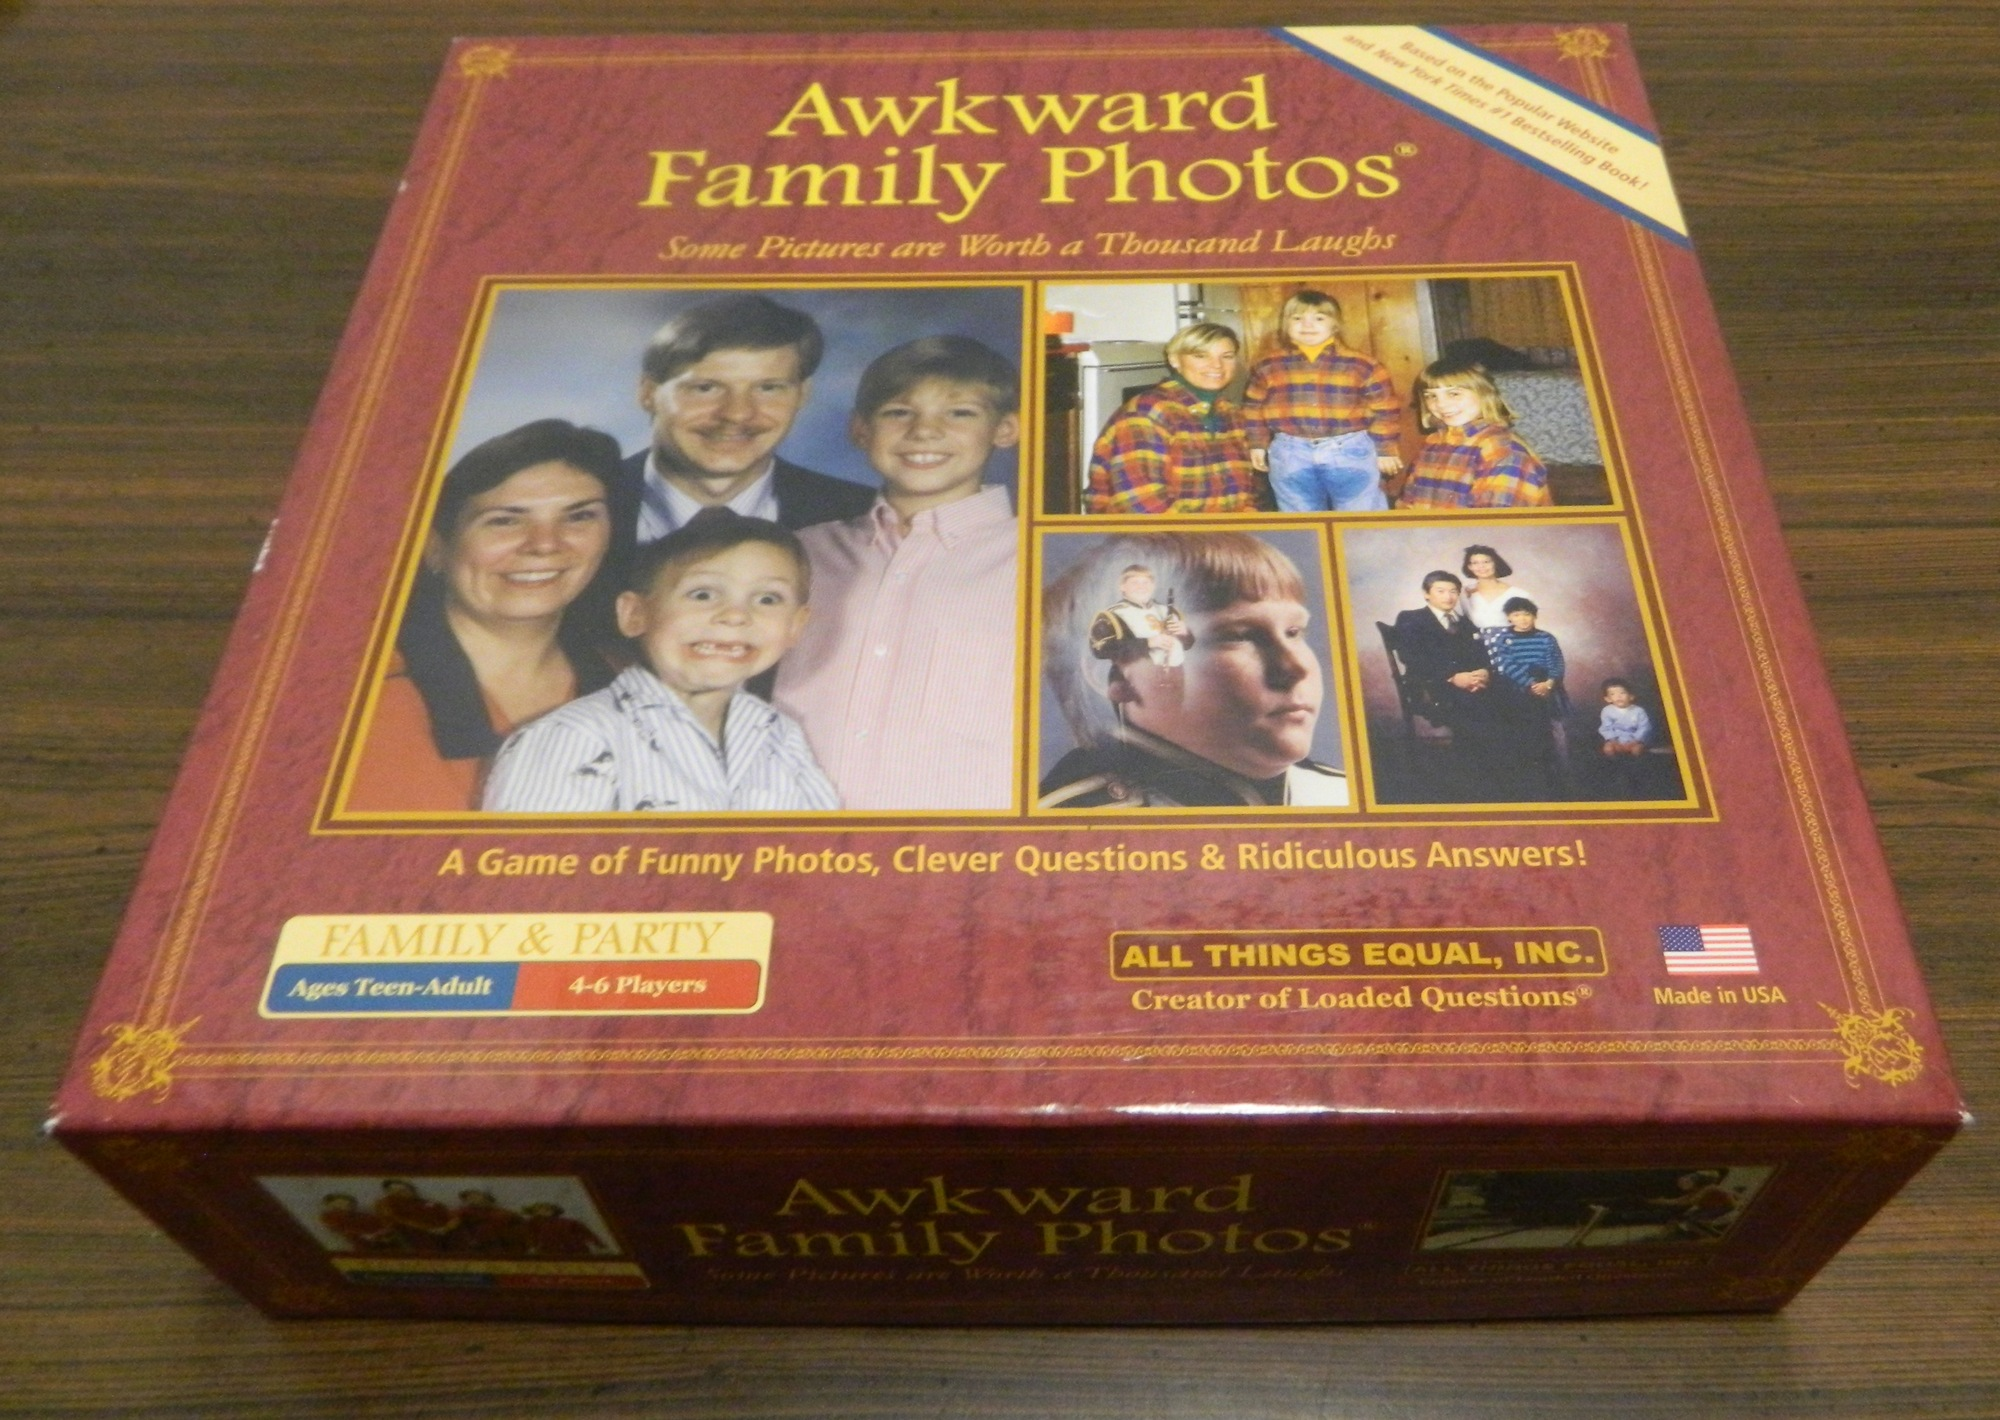 Box for Awkward Family Photos